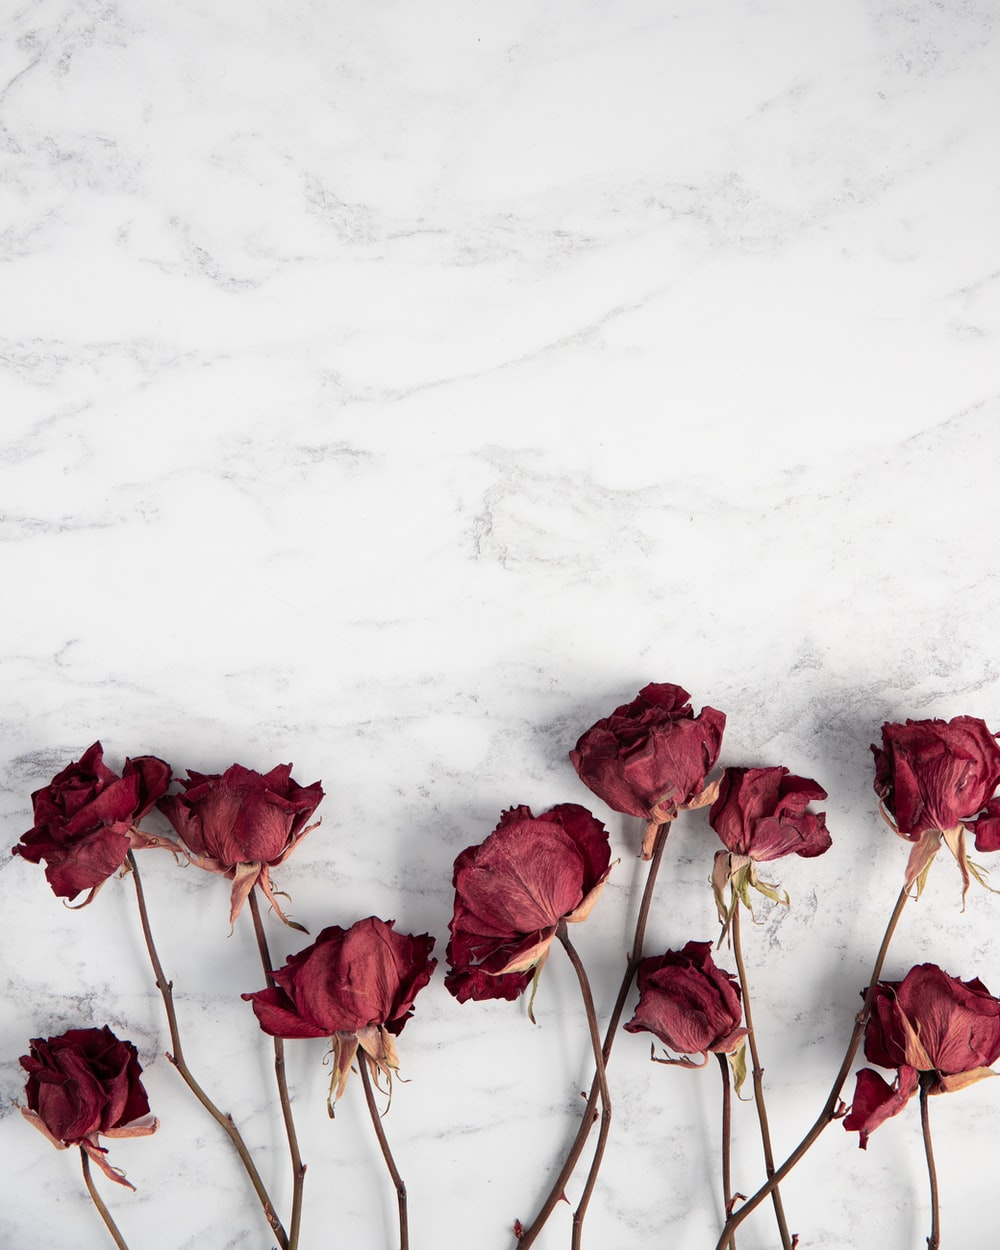 red roses on white surface